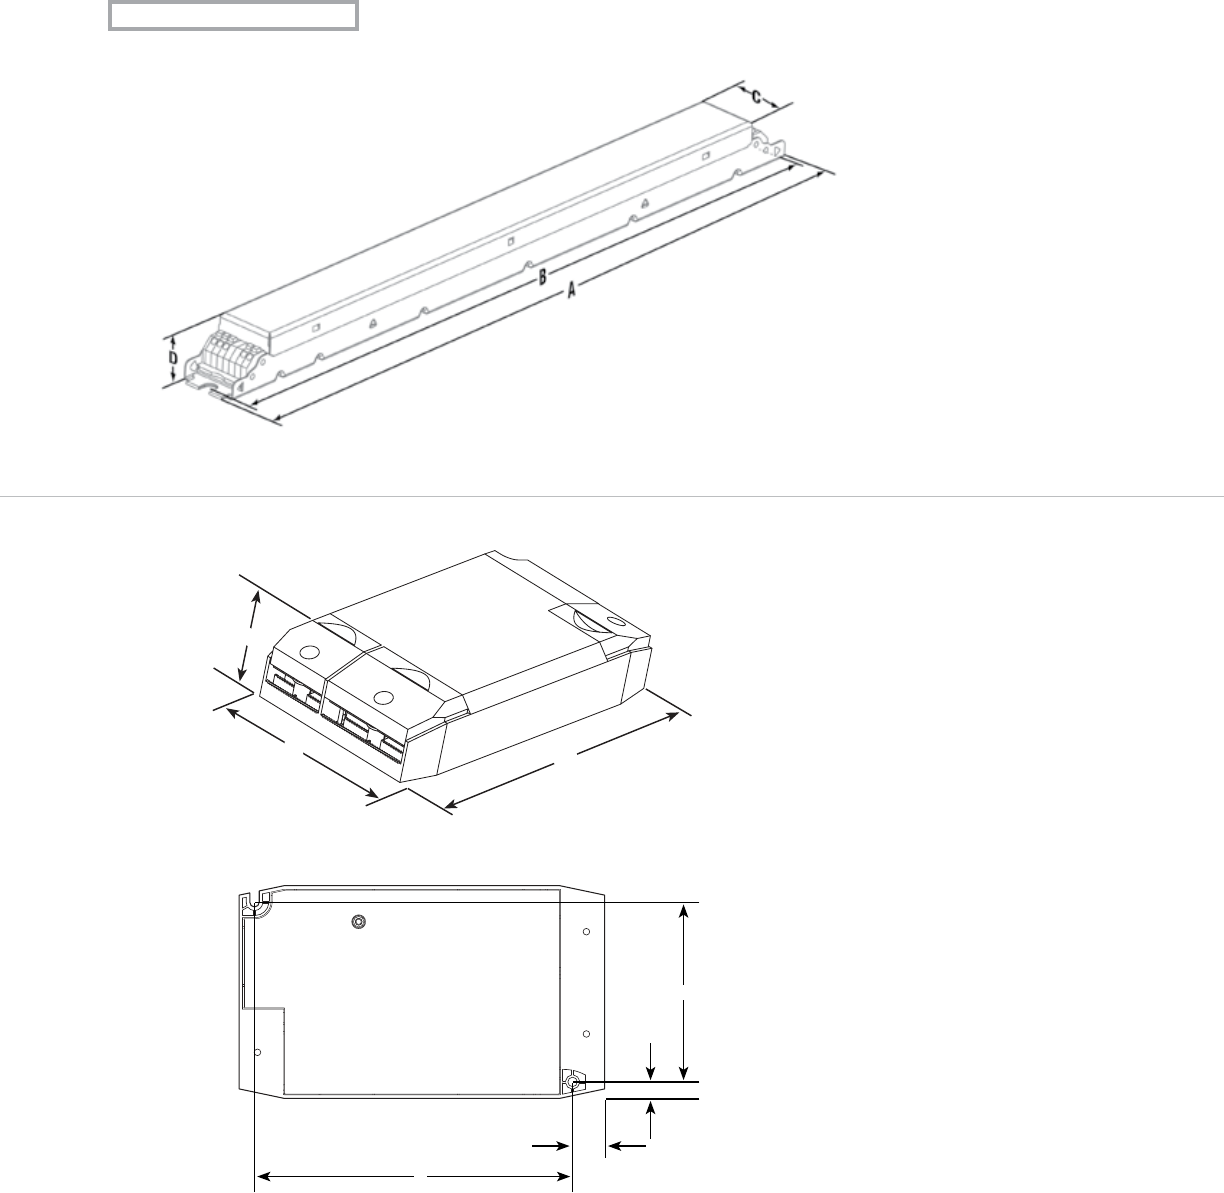 Cross Reference Guide For Discontinued Ballasts And Drivers Brochure Lutron Dimming Ballast Wiring Diagram Ehdt832mu210 14 Email Oemorderslutroncom